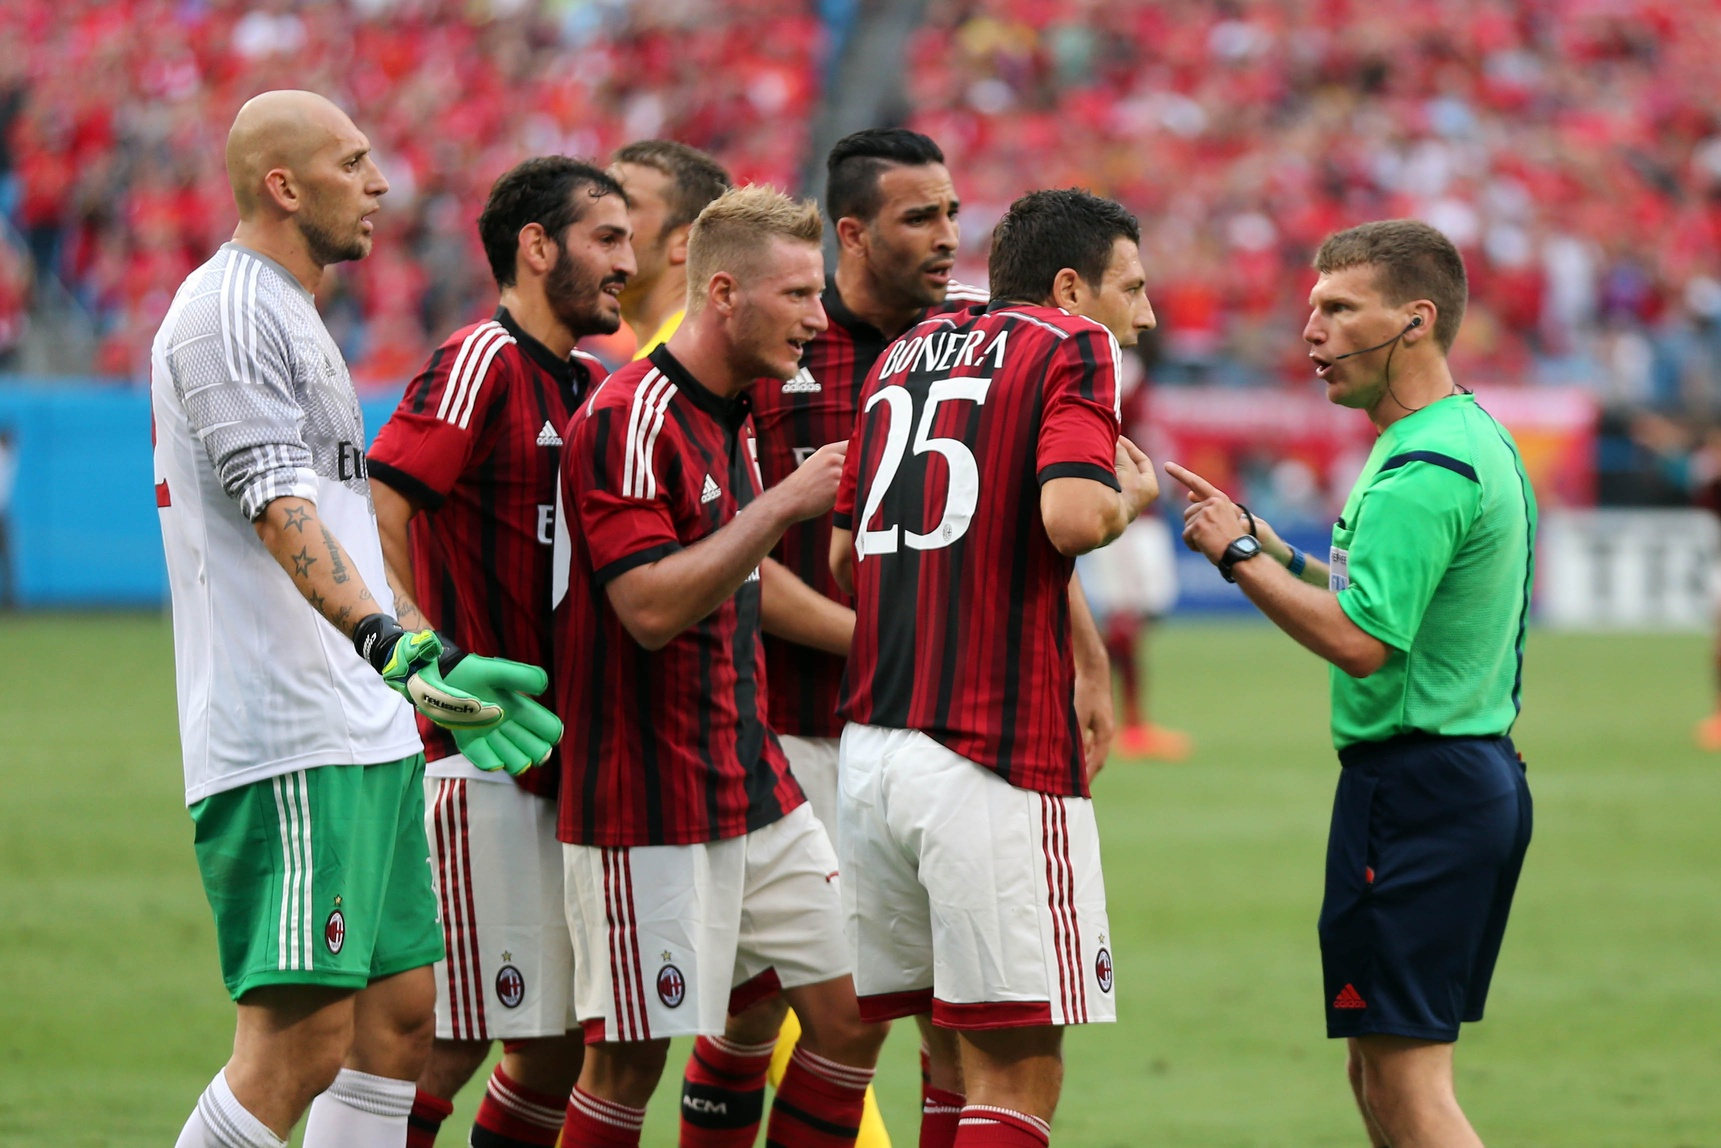 Challenges in Serie A Epitomized By Lack of Spending in Transfer Window